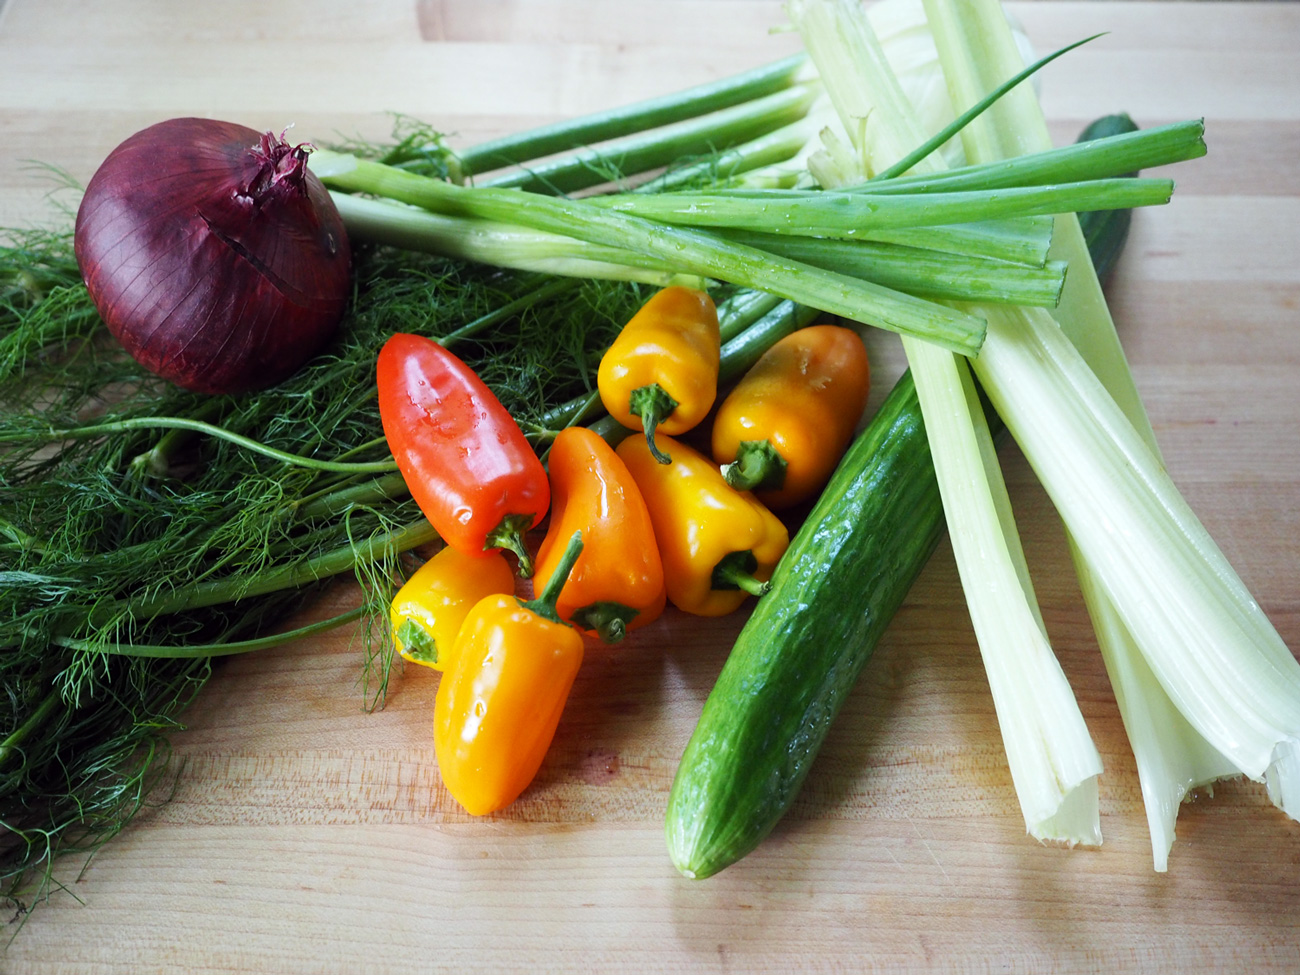 The line up: Fennel, red onion, scallions, mini bell  peppers, English cucumber, celery.